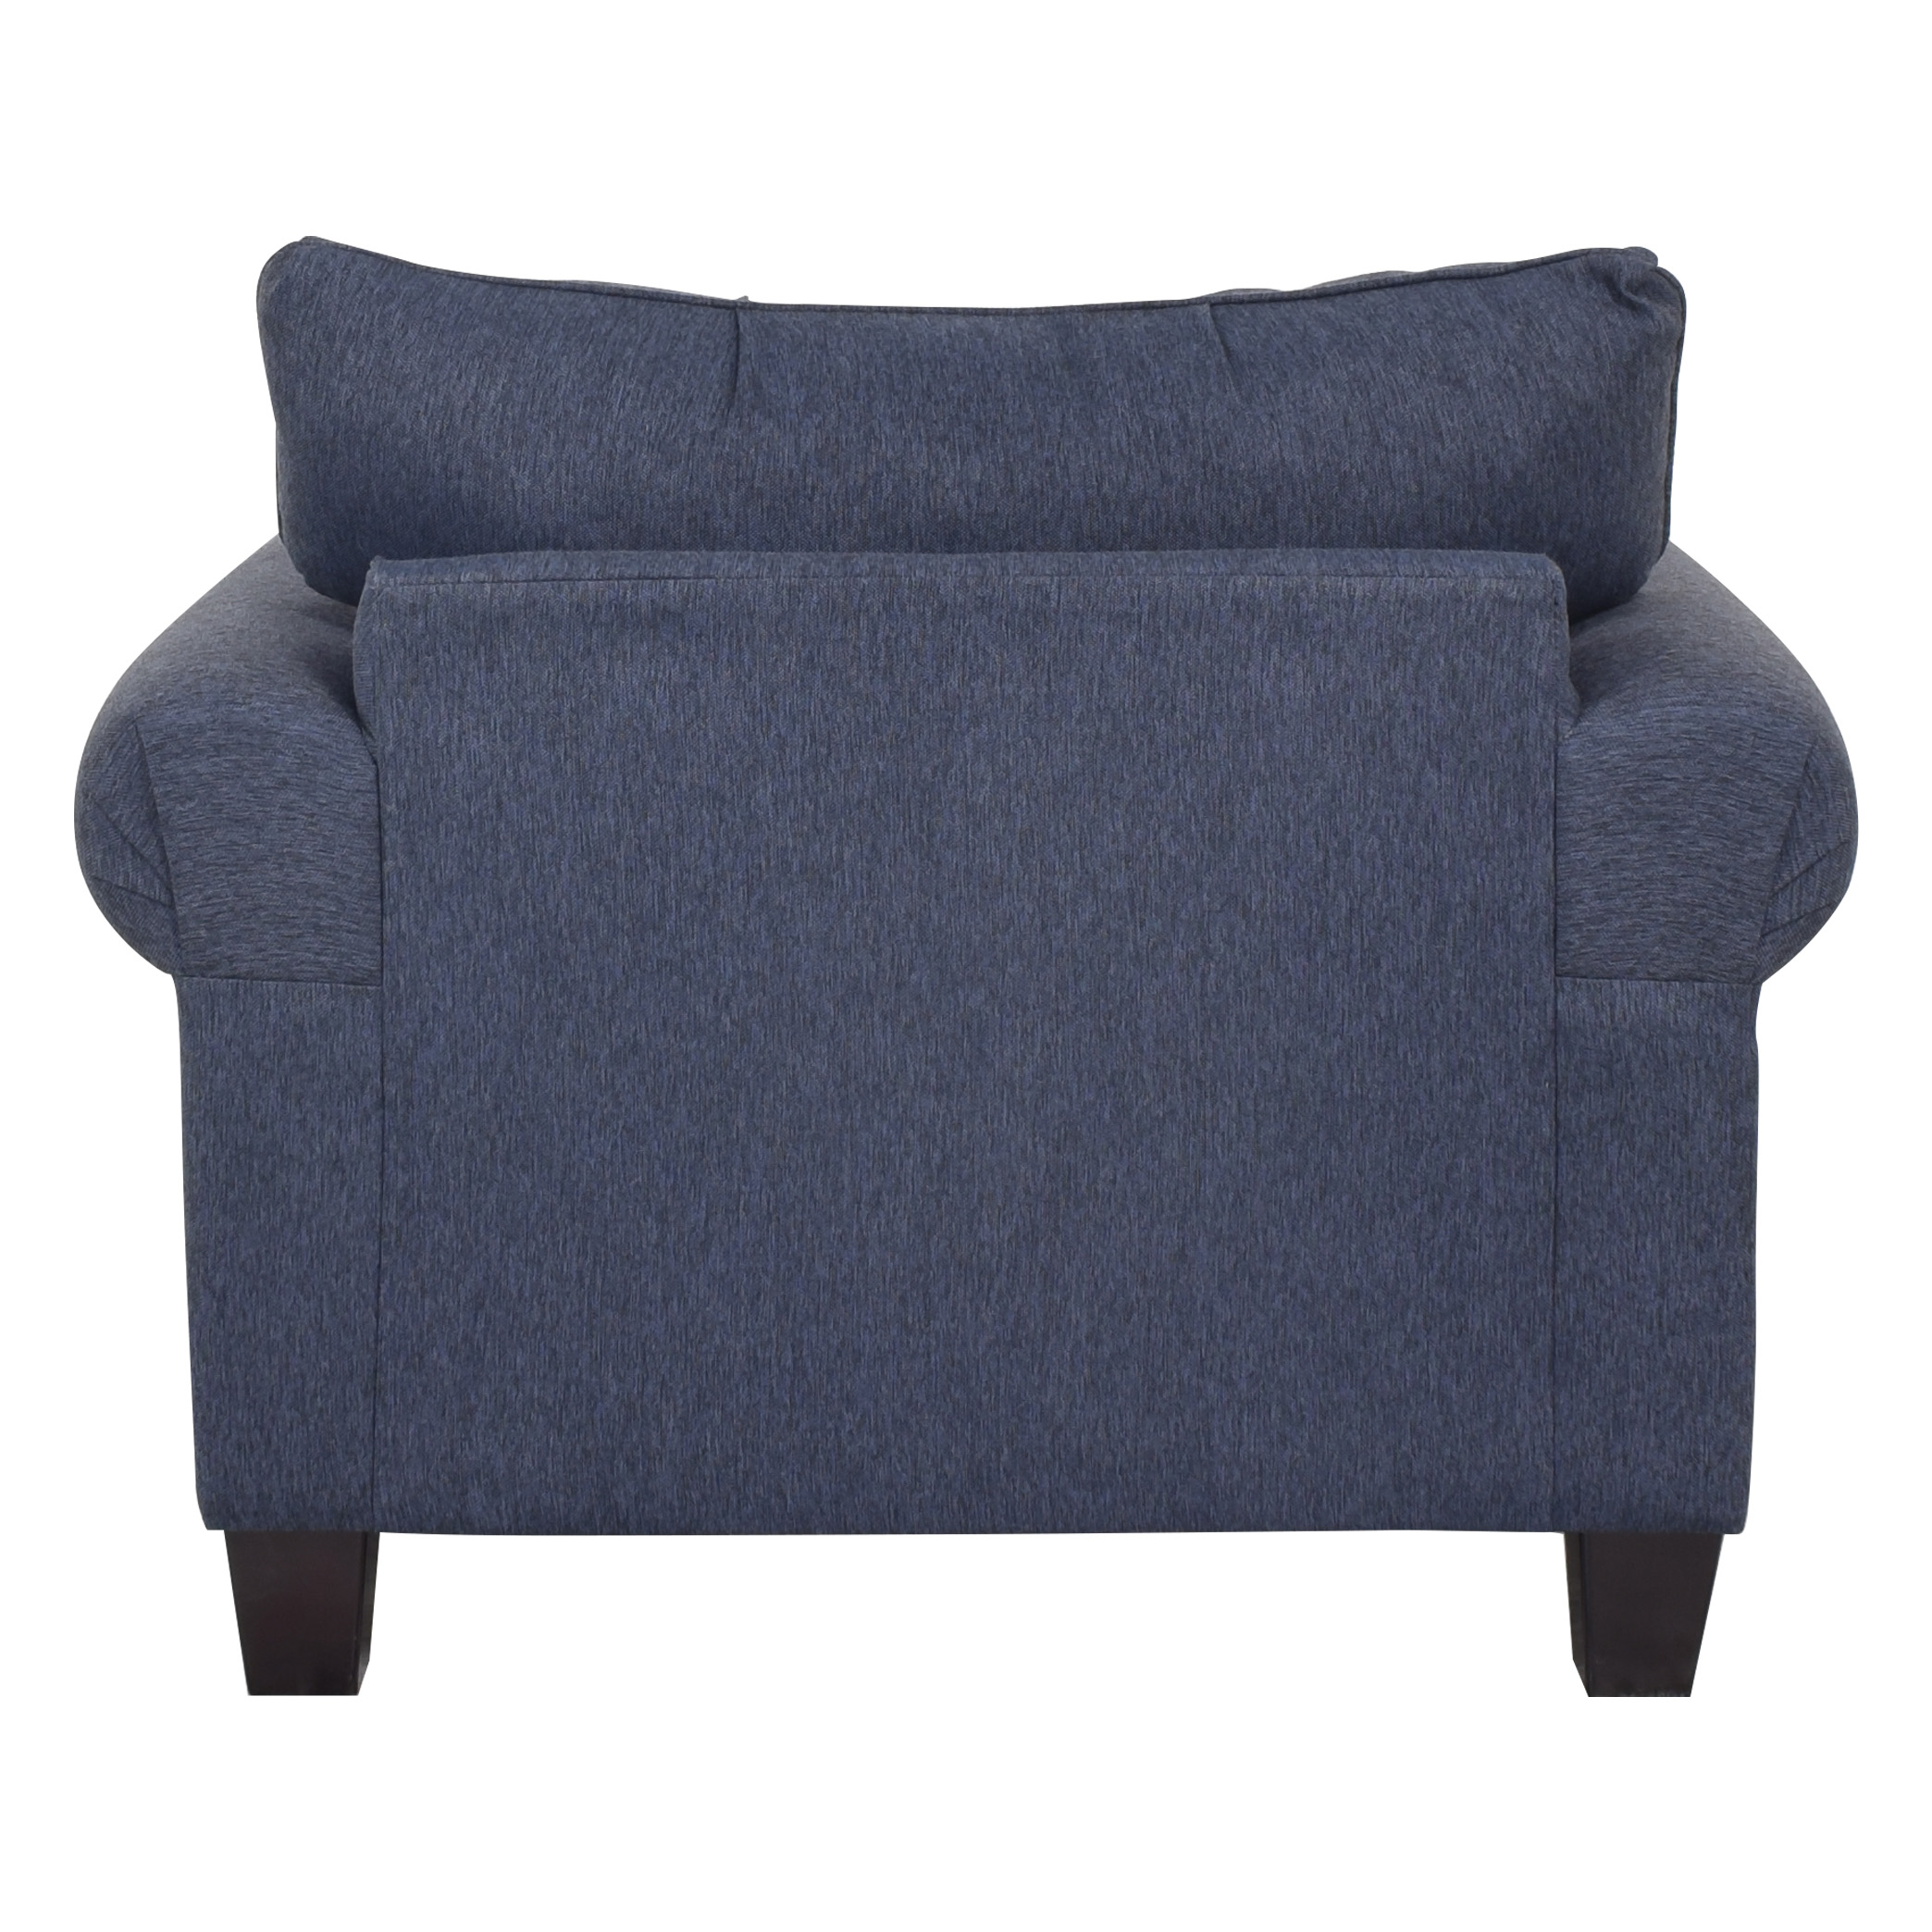 buy Raymour & Flanigan Accent Chair Raymour & Flanigan